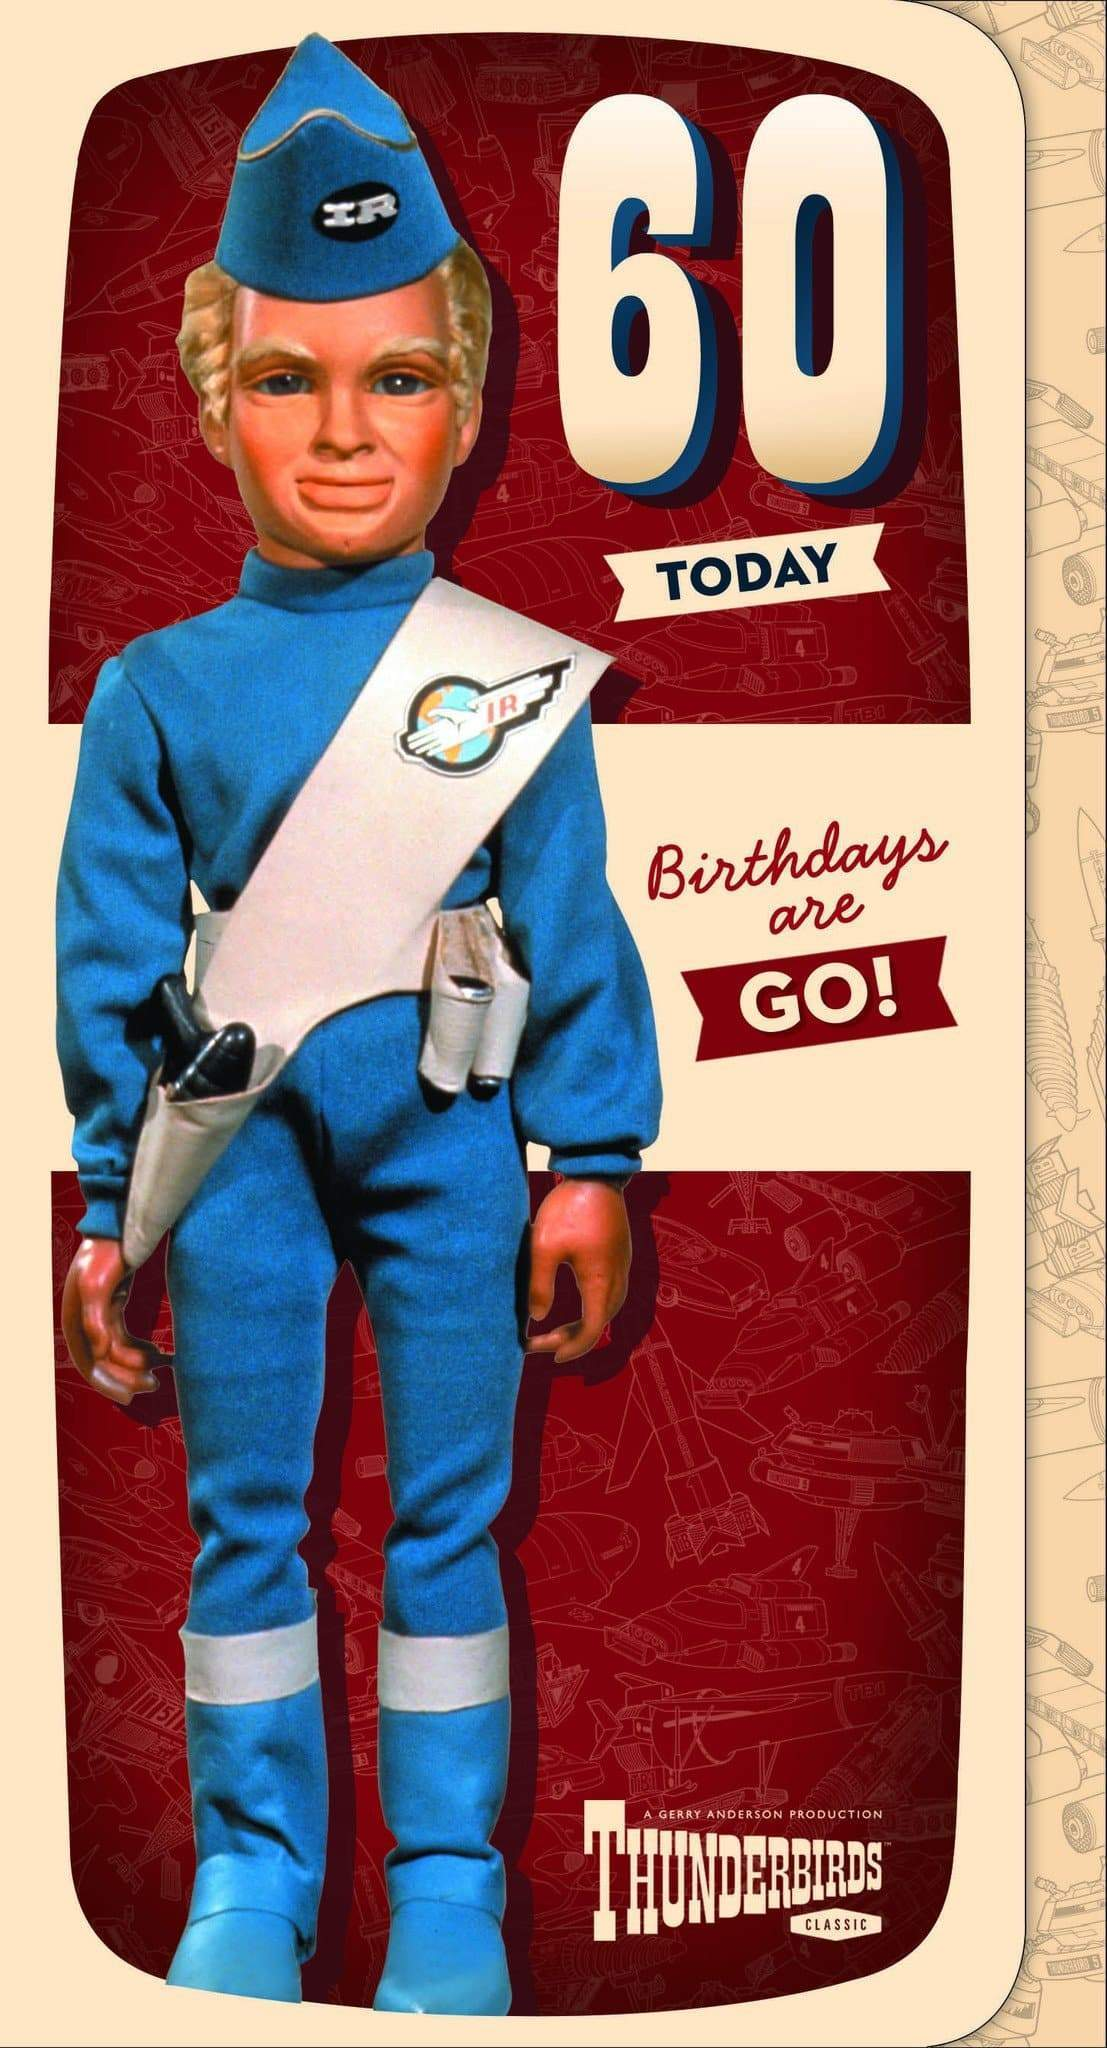 Thunderbirds Age 60 Birthday Card - The Gerry Anderson Store